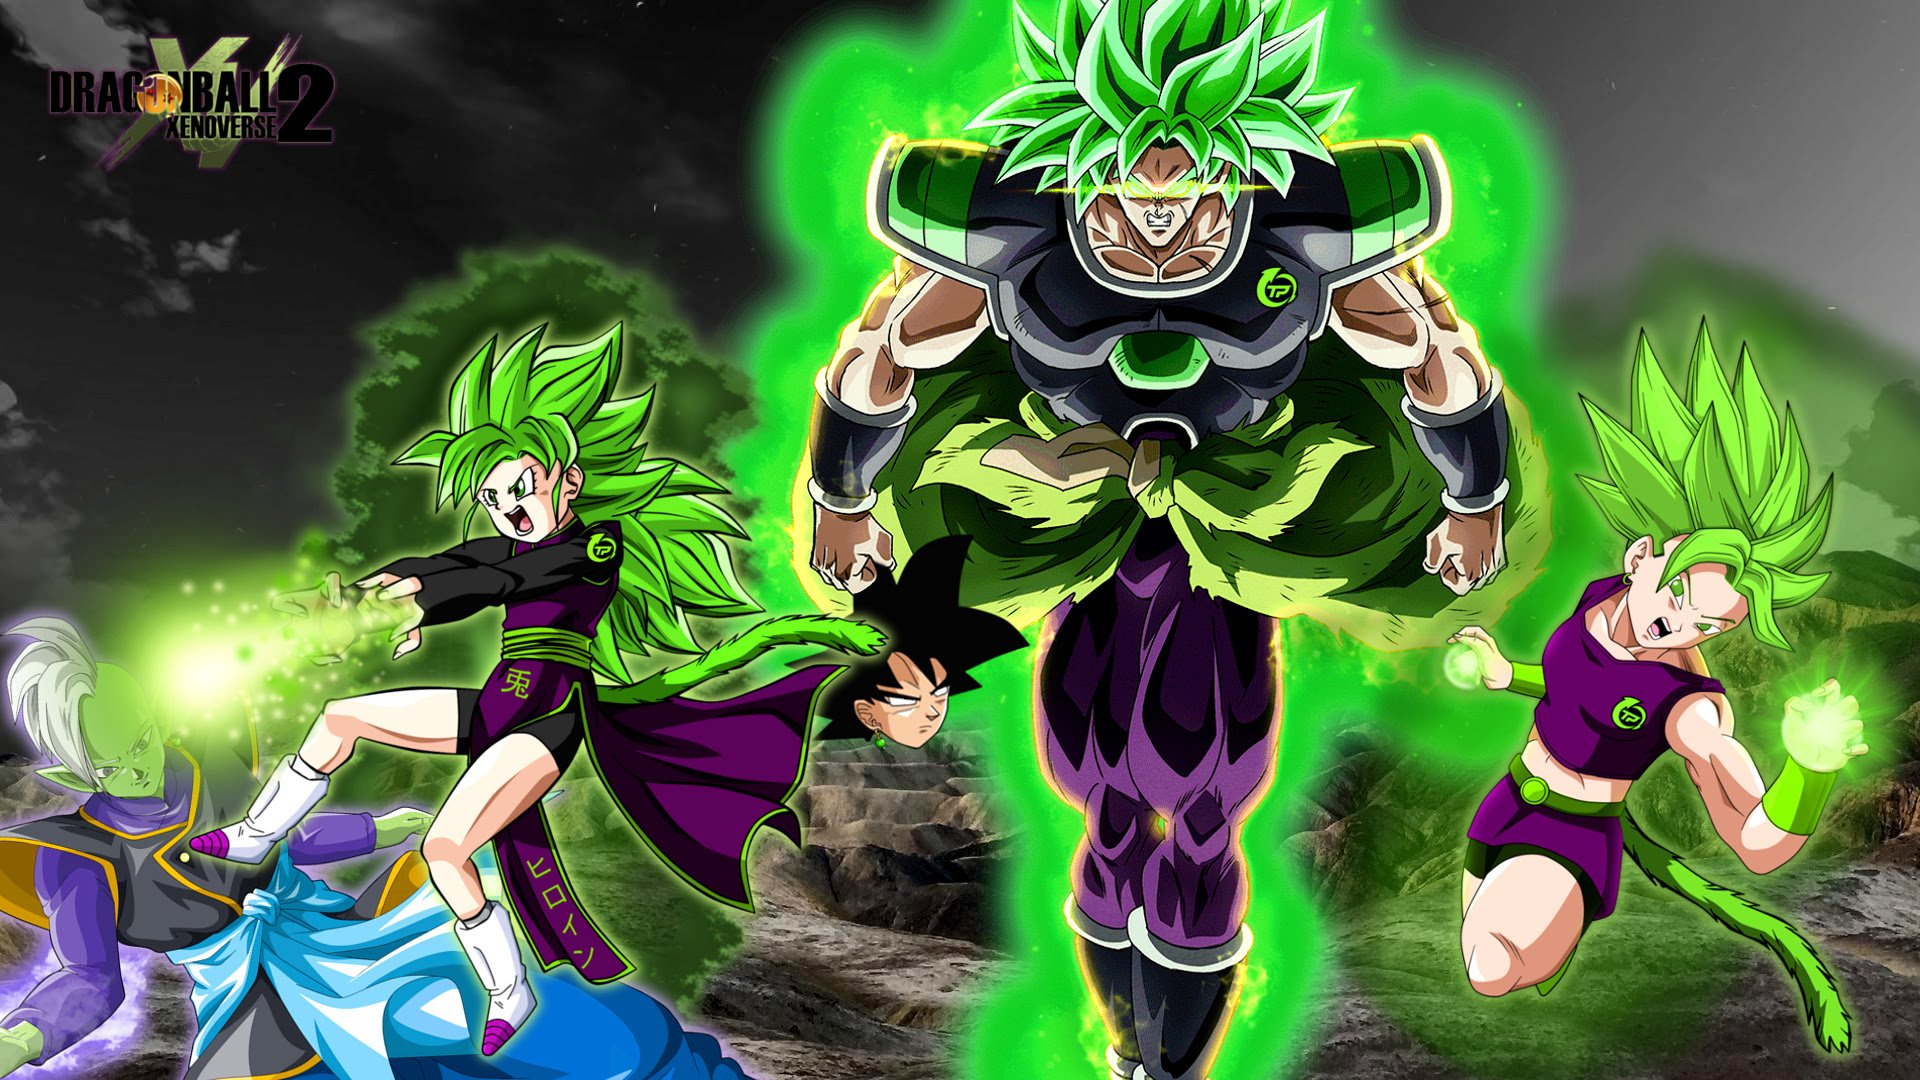 Super Saiyan Green Power Hd Wallpaper Background Image 1920x1080